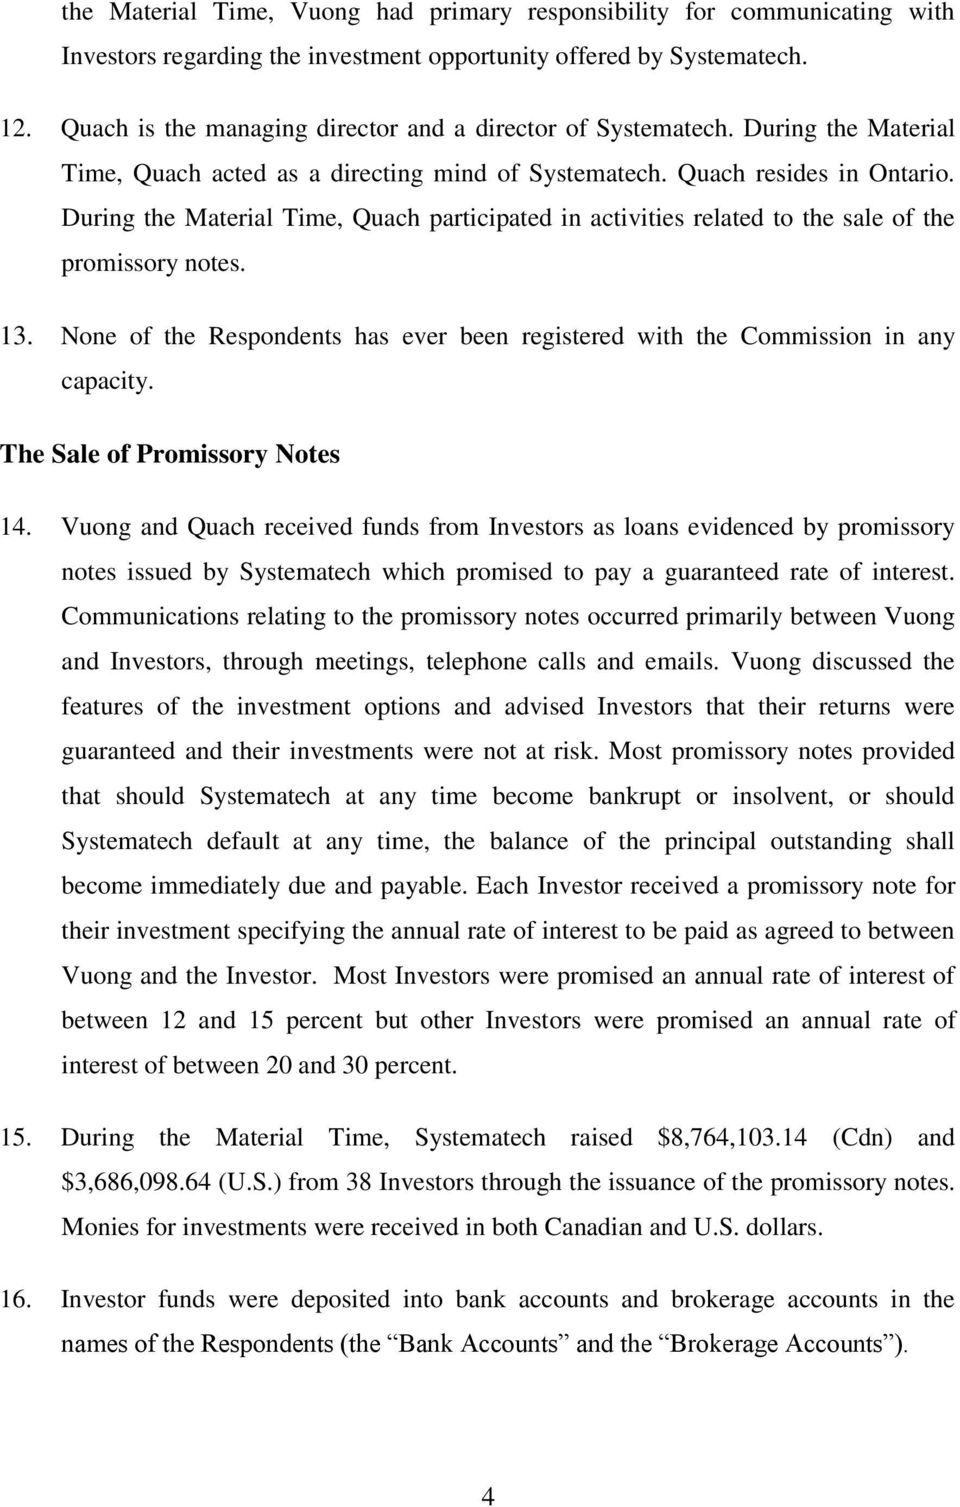 During the Material Time, Quach participated in activities related to the sale of the promissory notes. 13. None of the Respondents has ever been registered with the Commission in any capacity.